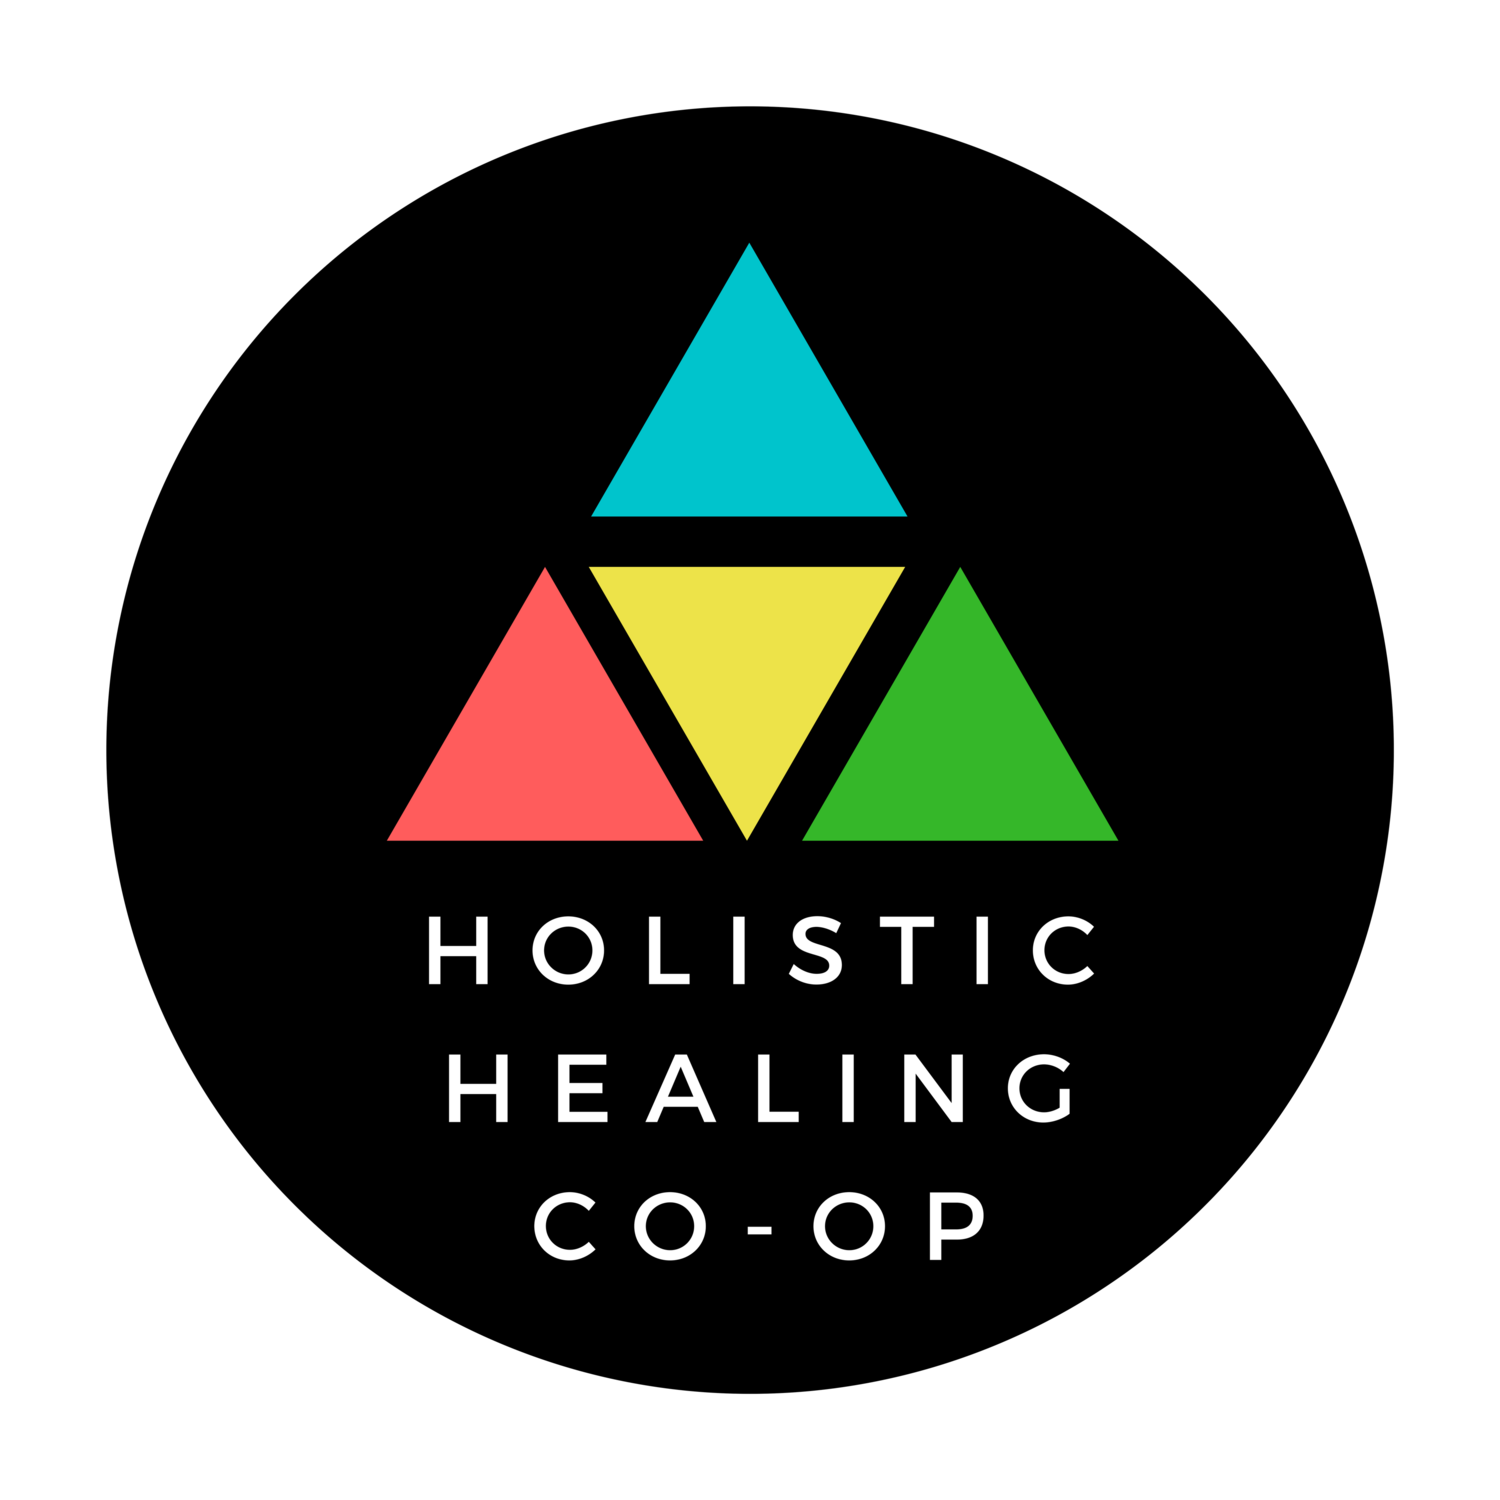 Holistic Healing Co-op